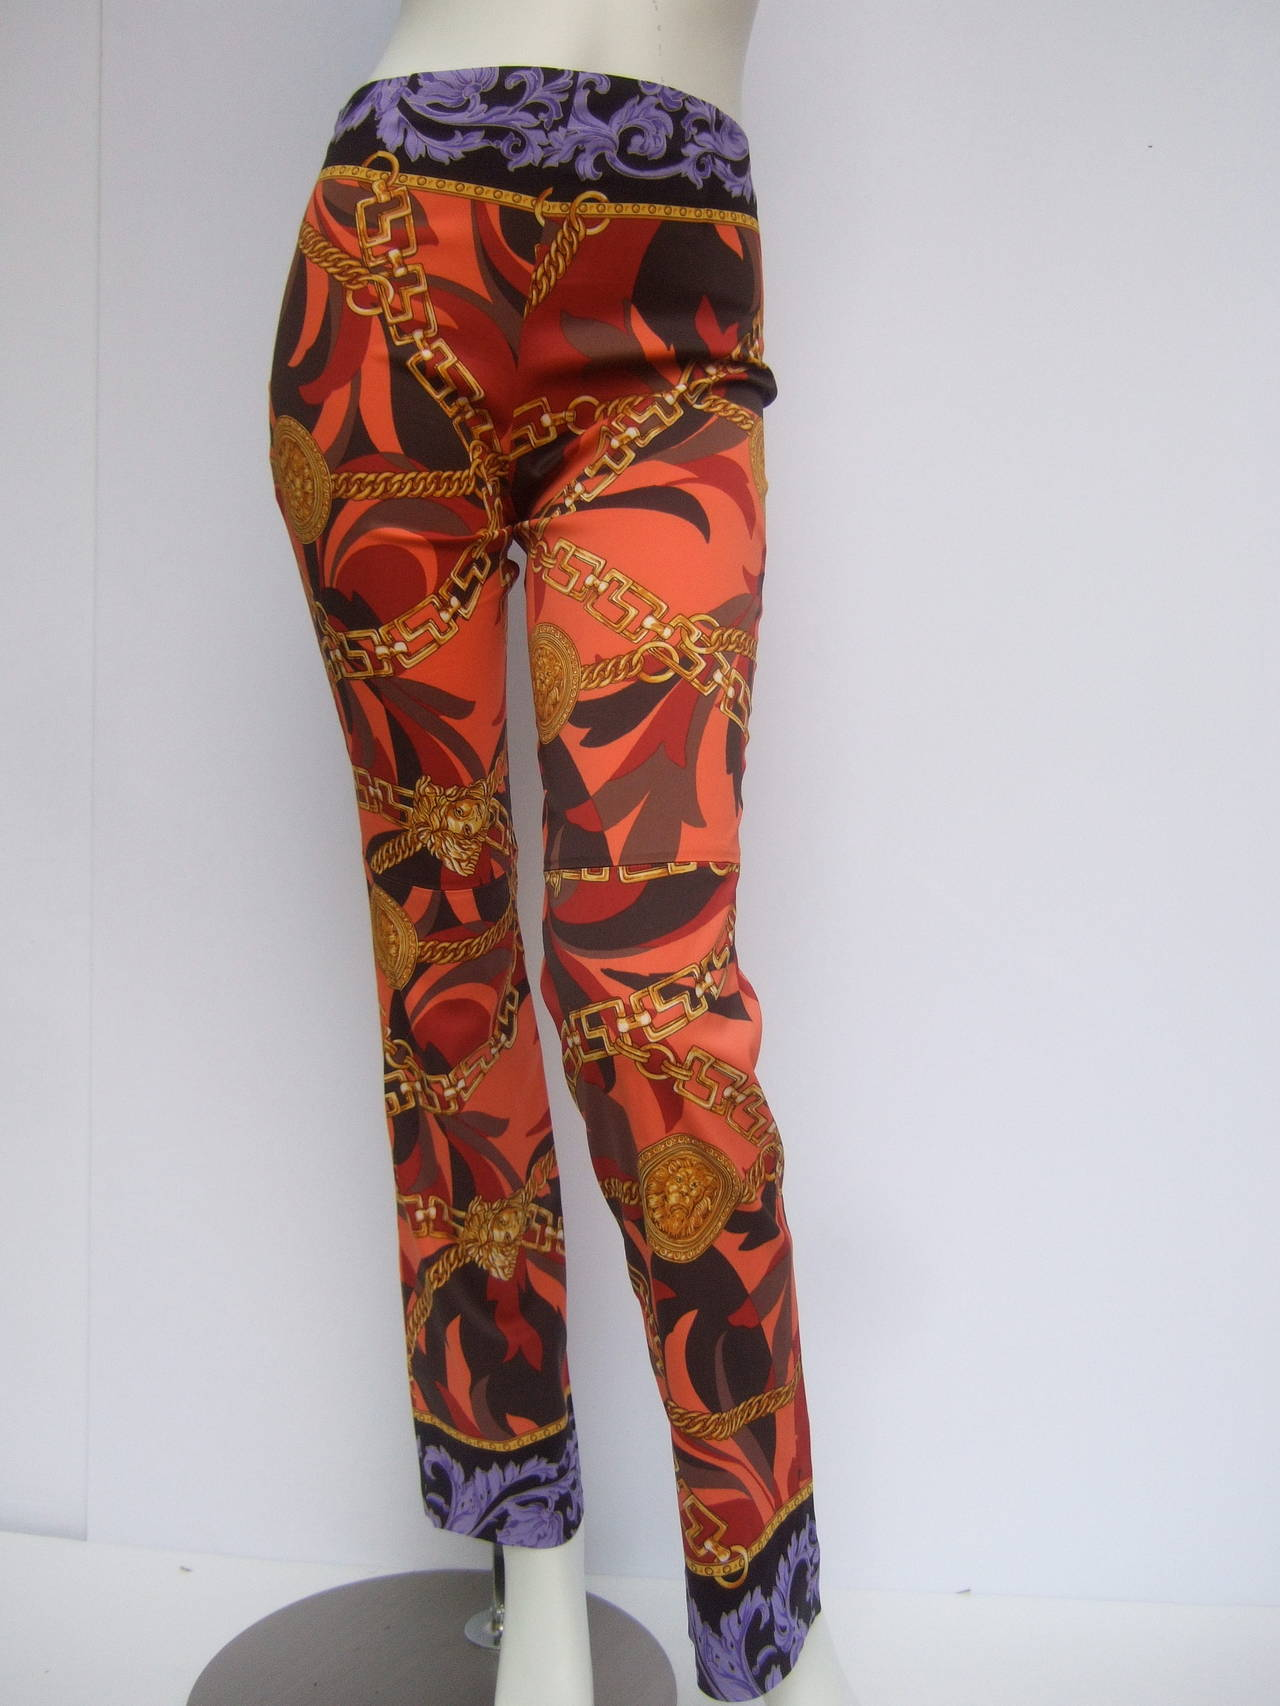 Versace Iconic Medusa Graphic Print Stretch Jeans Size 28 4